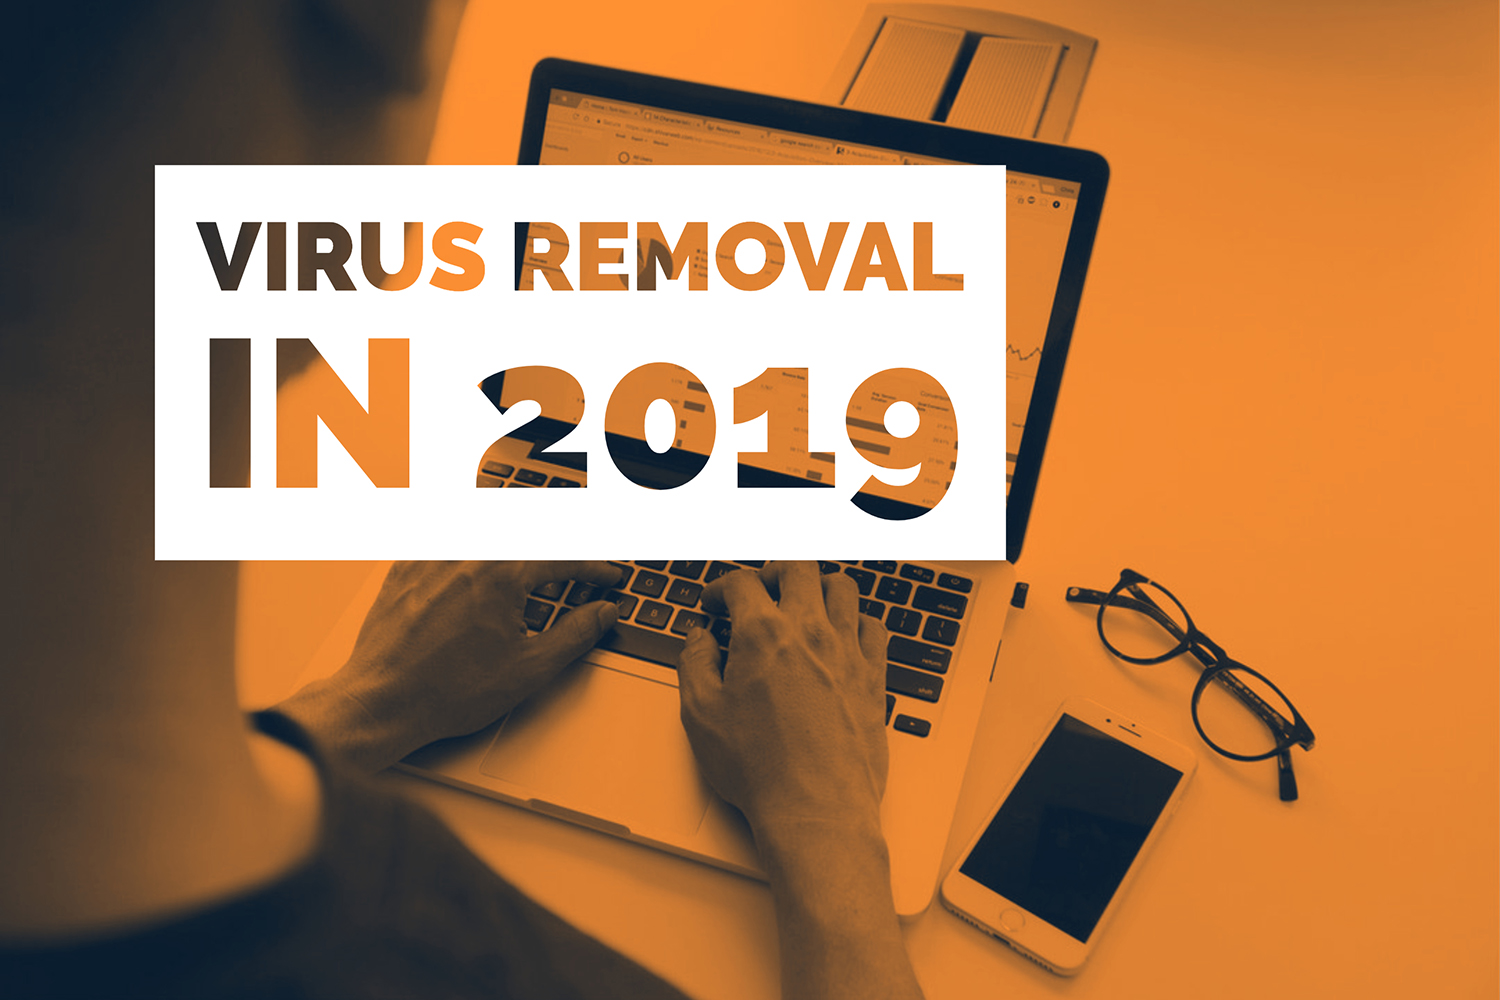 virus removal in 2019 image